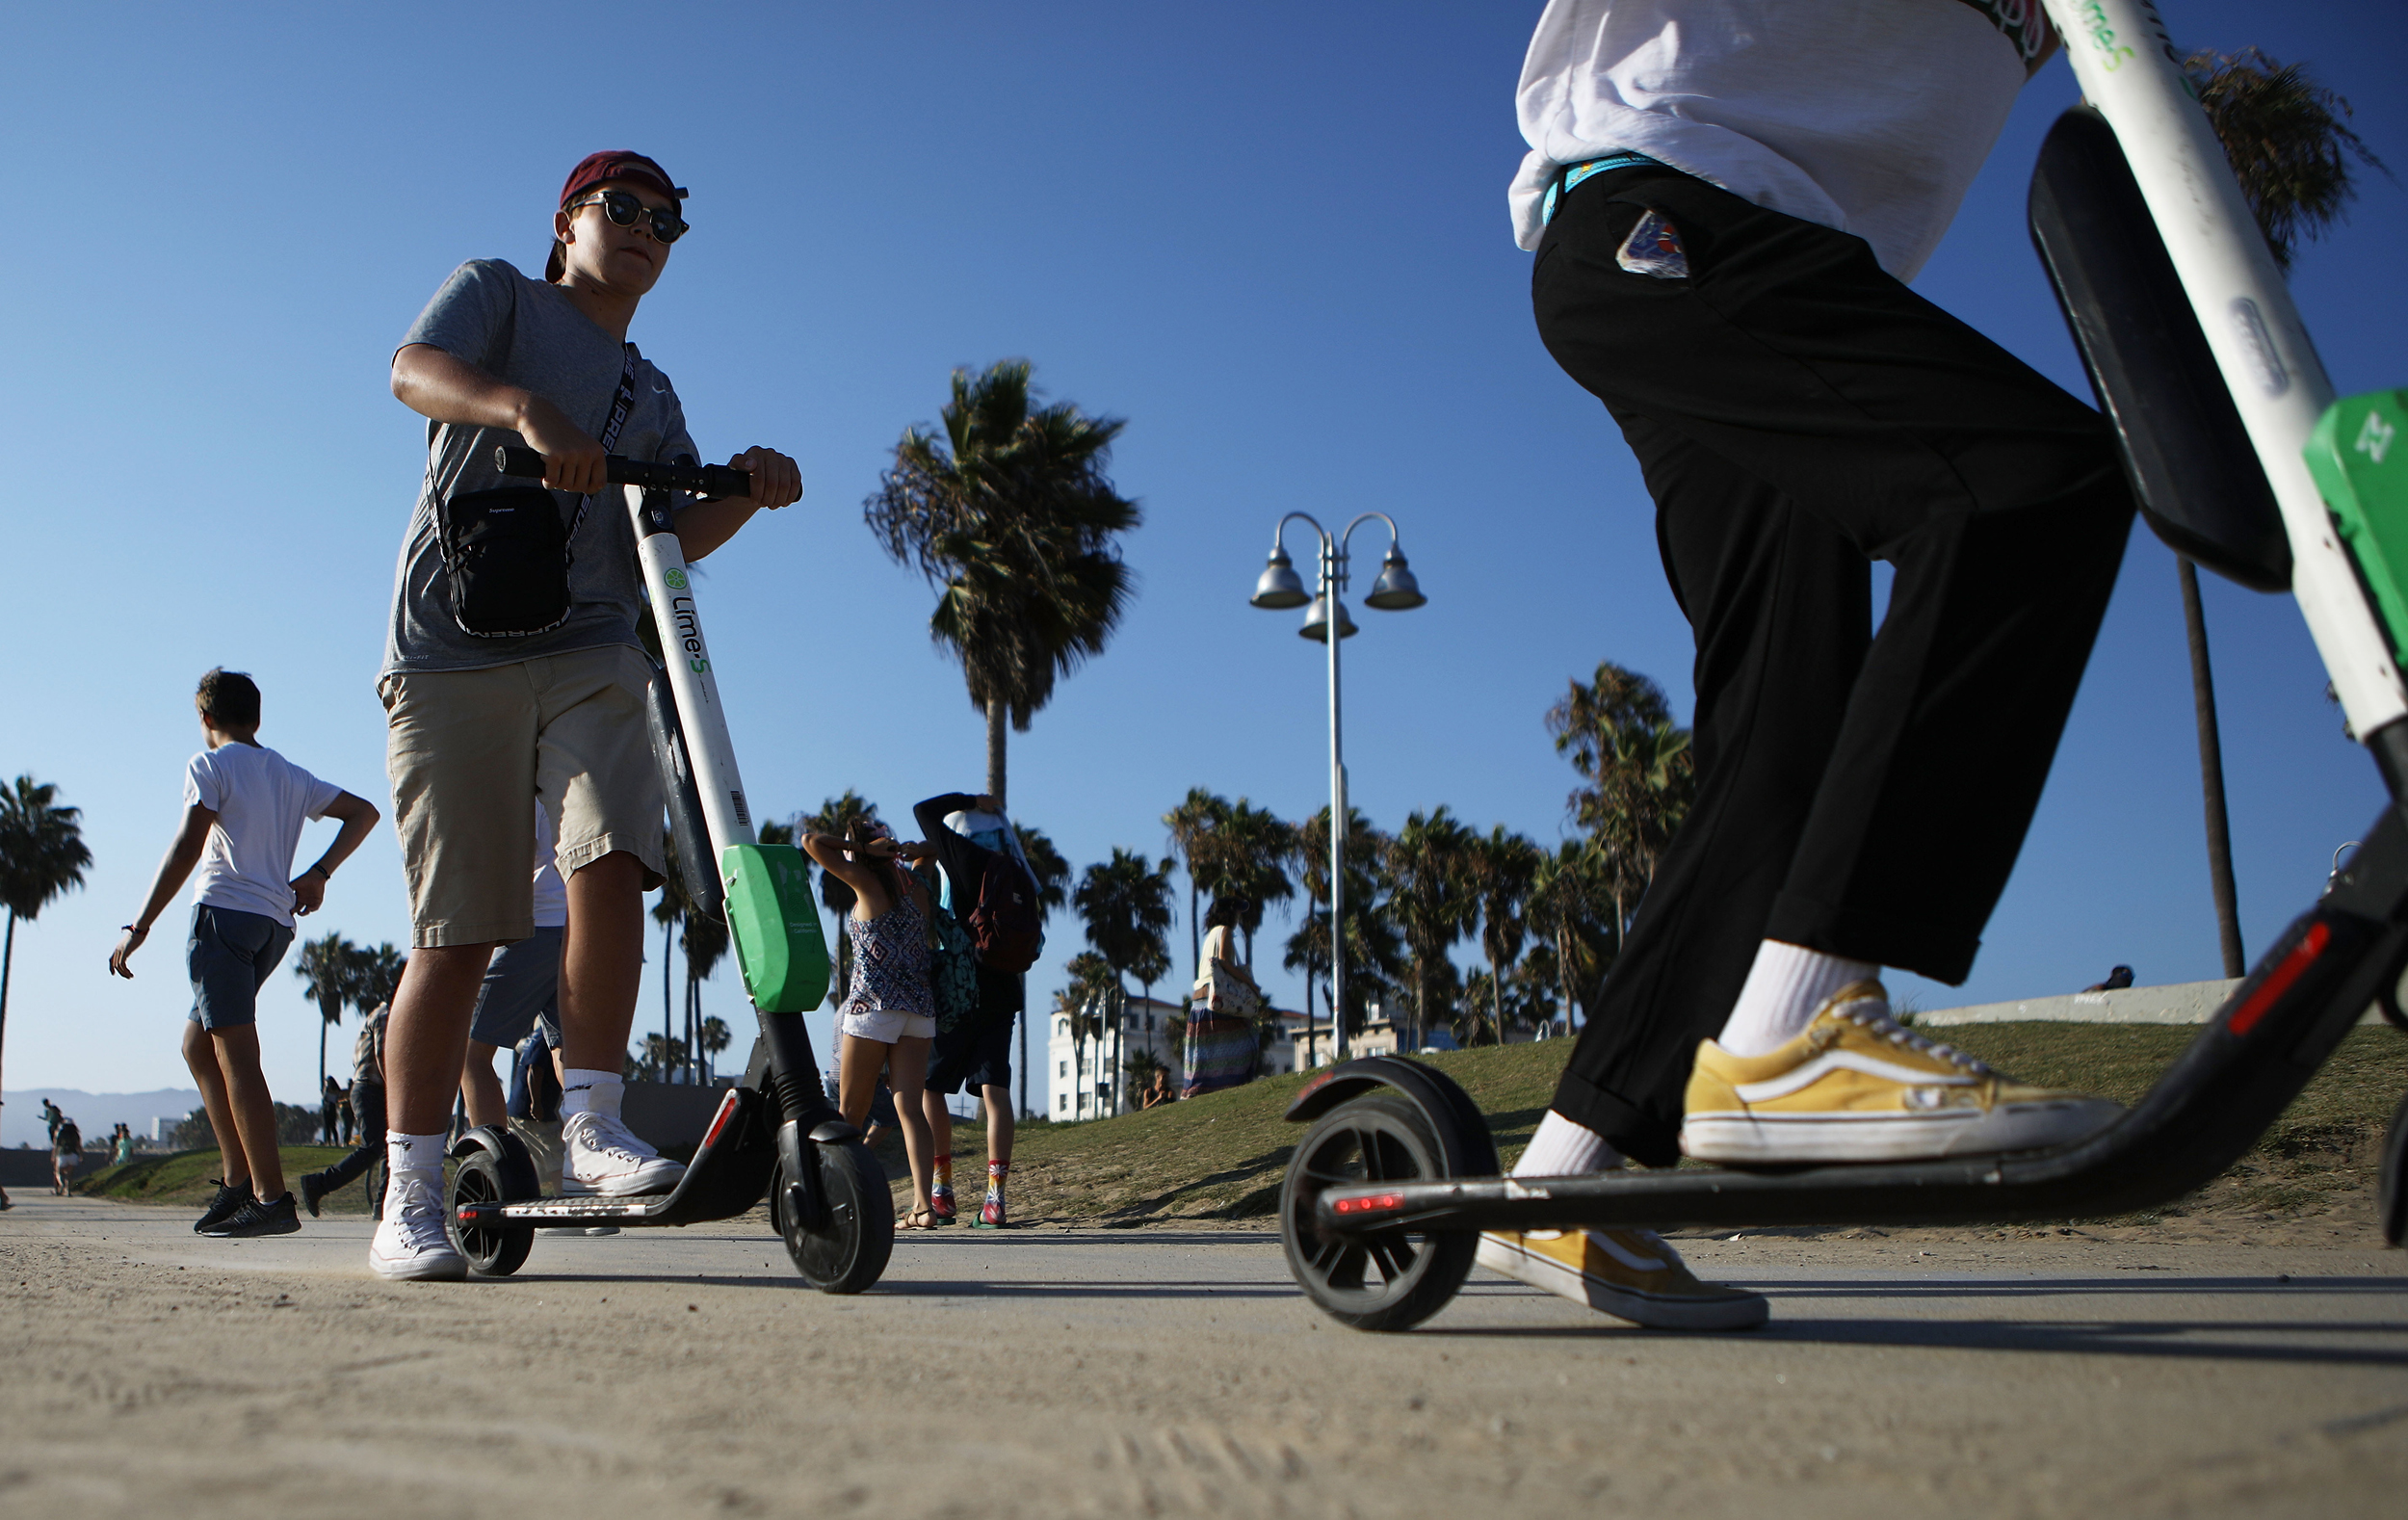 Opinion | The case for more electric scooters, not fewer